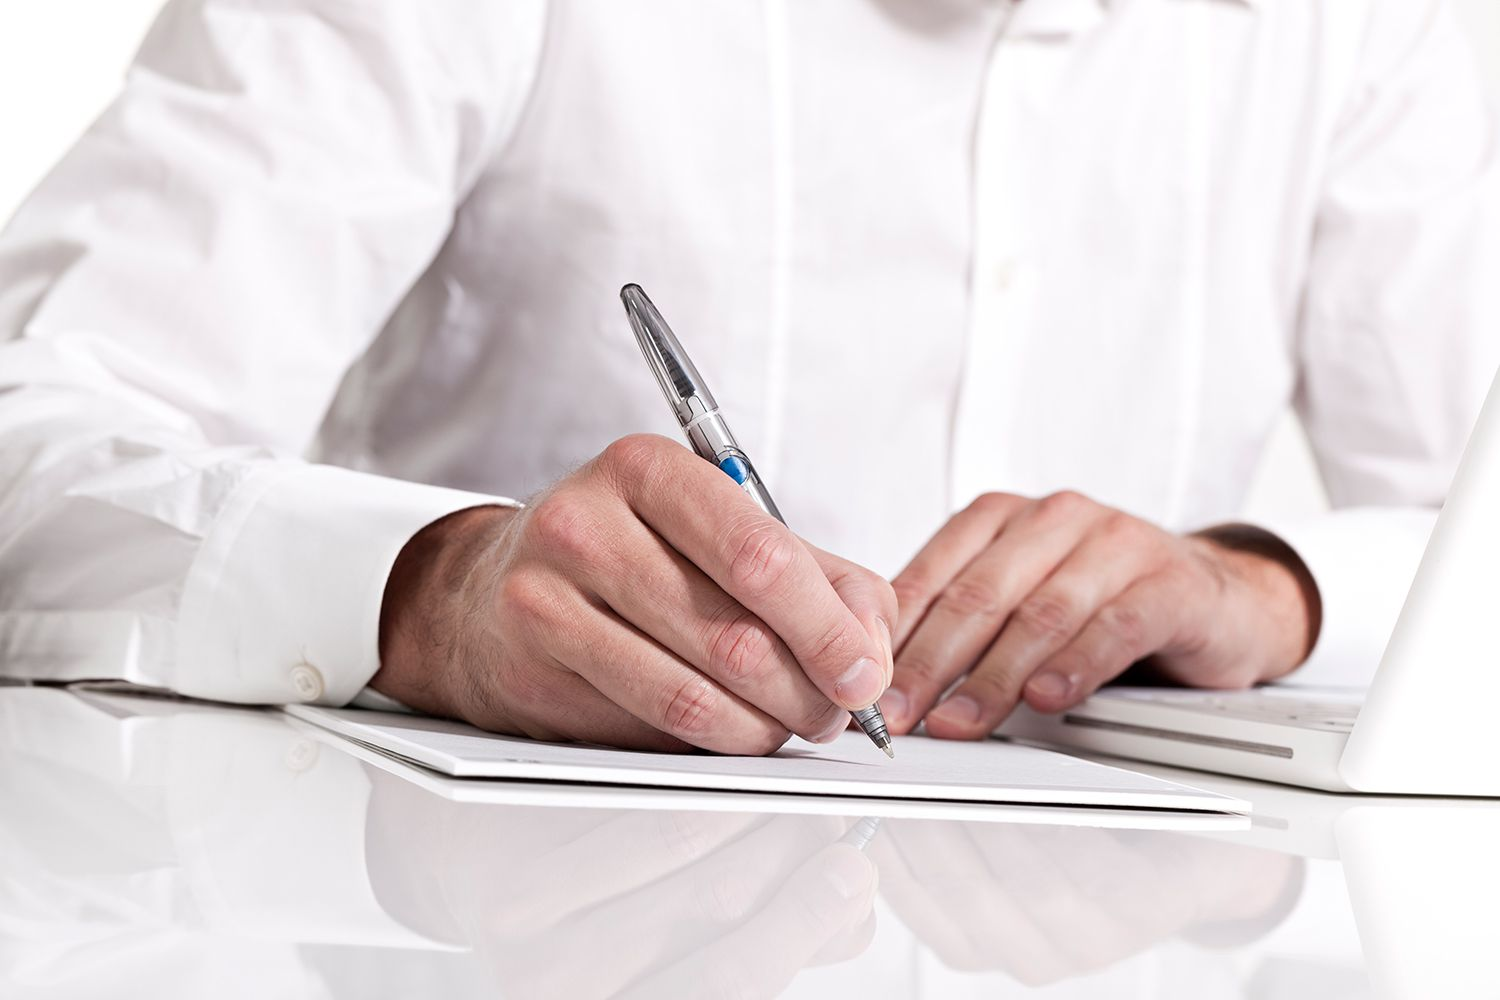 Businessman holding a pen & taking notes on paper.